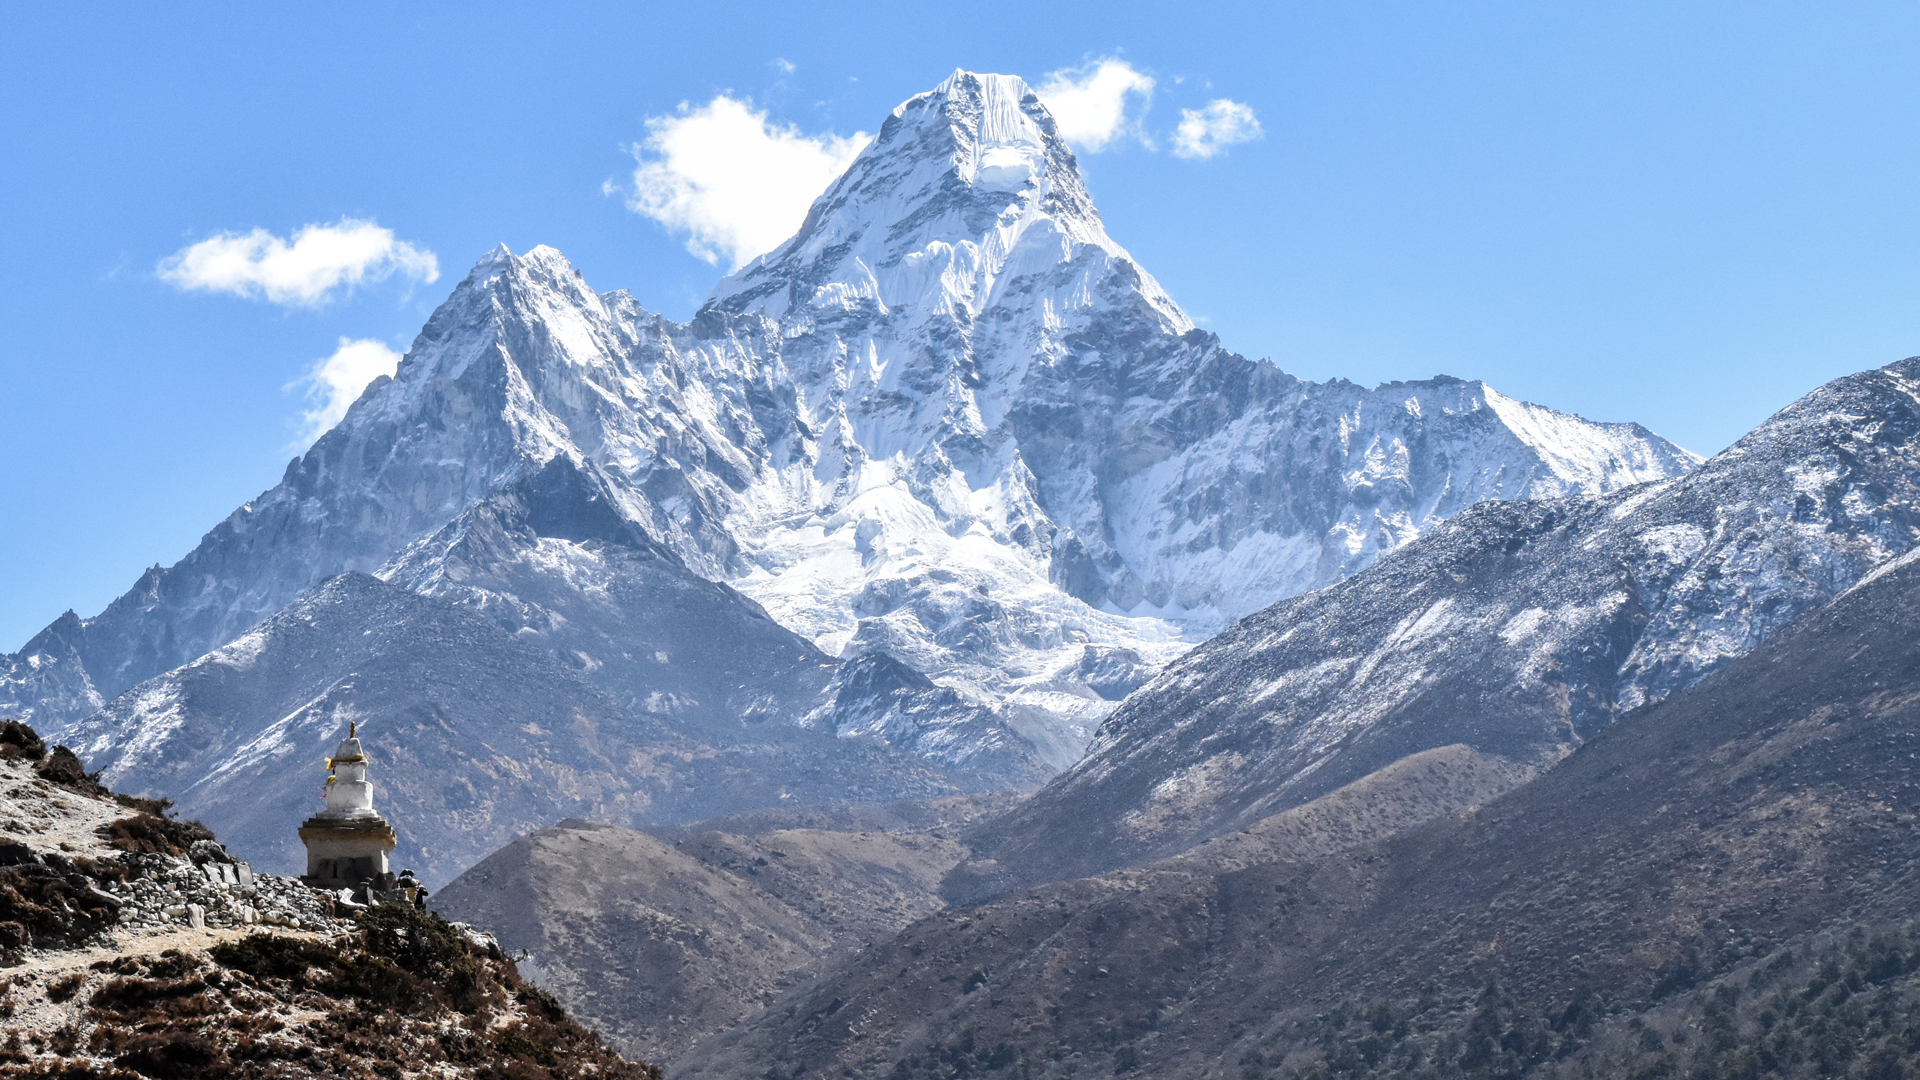 Ama Dablam Expedition Base Camp Service